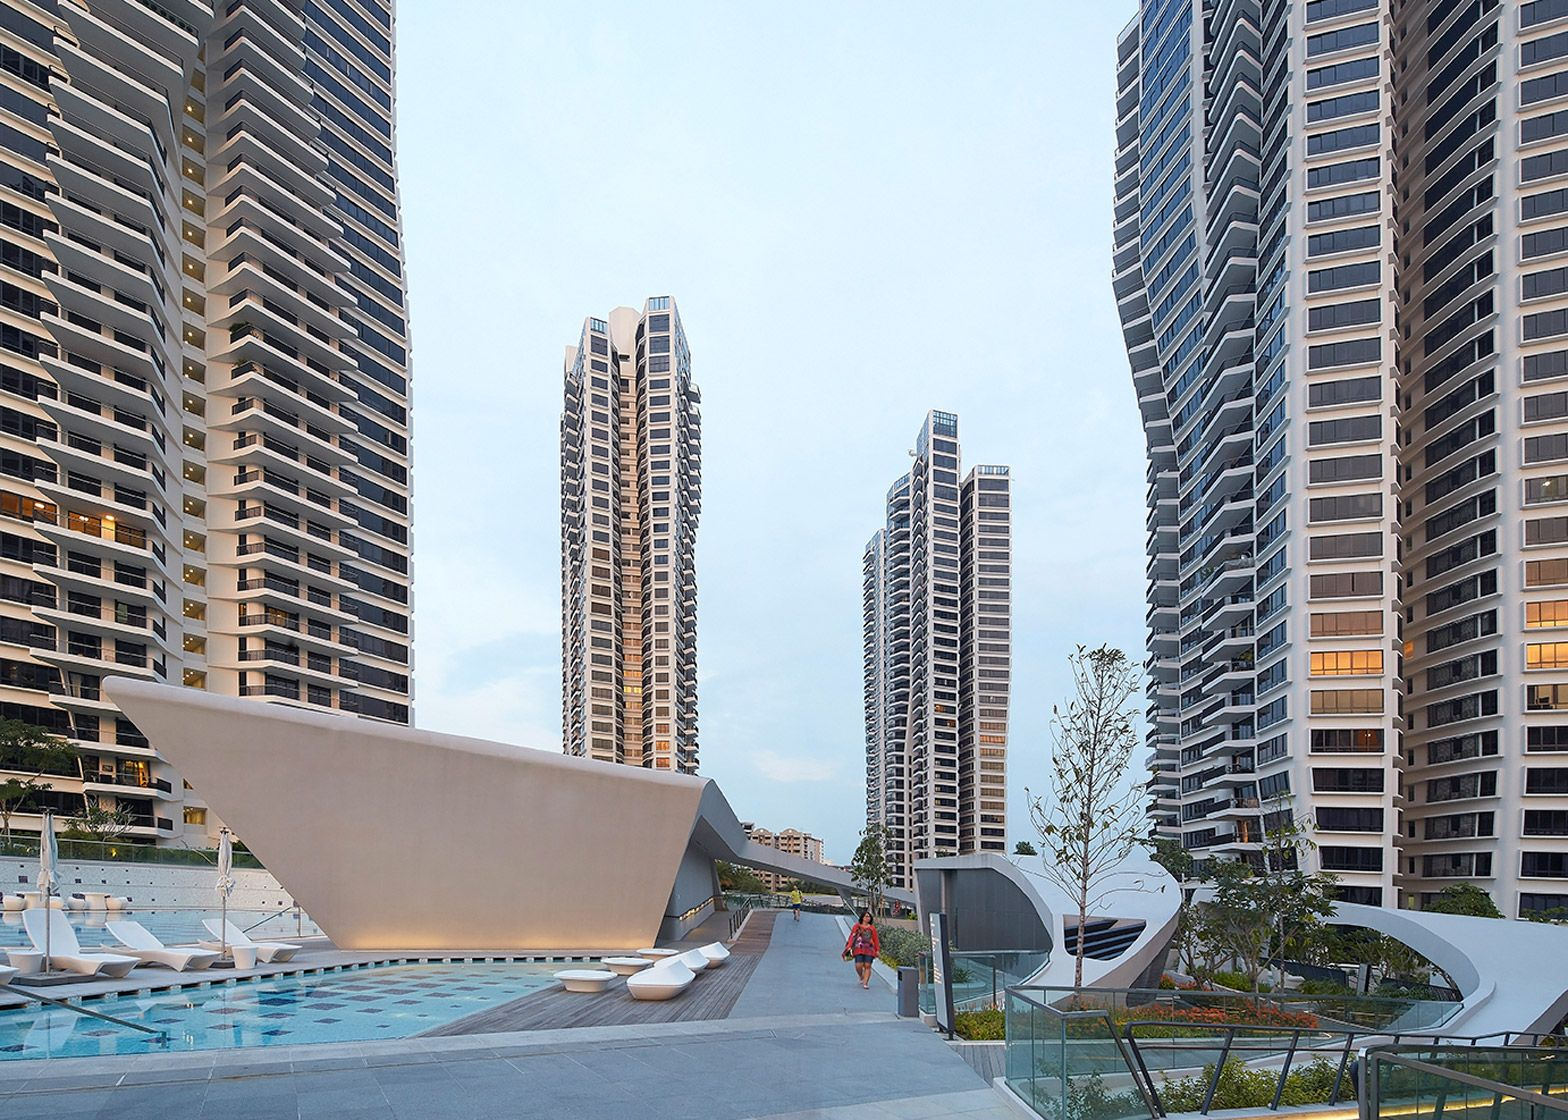 Zaha hadid 39 s d 39 leedon in singapore has towers with petal for Architecture firms in singapore